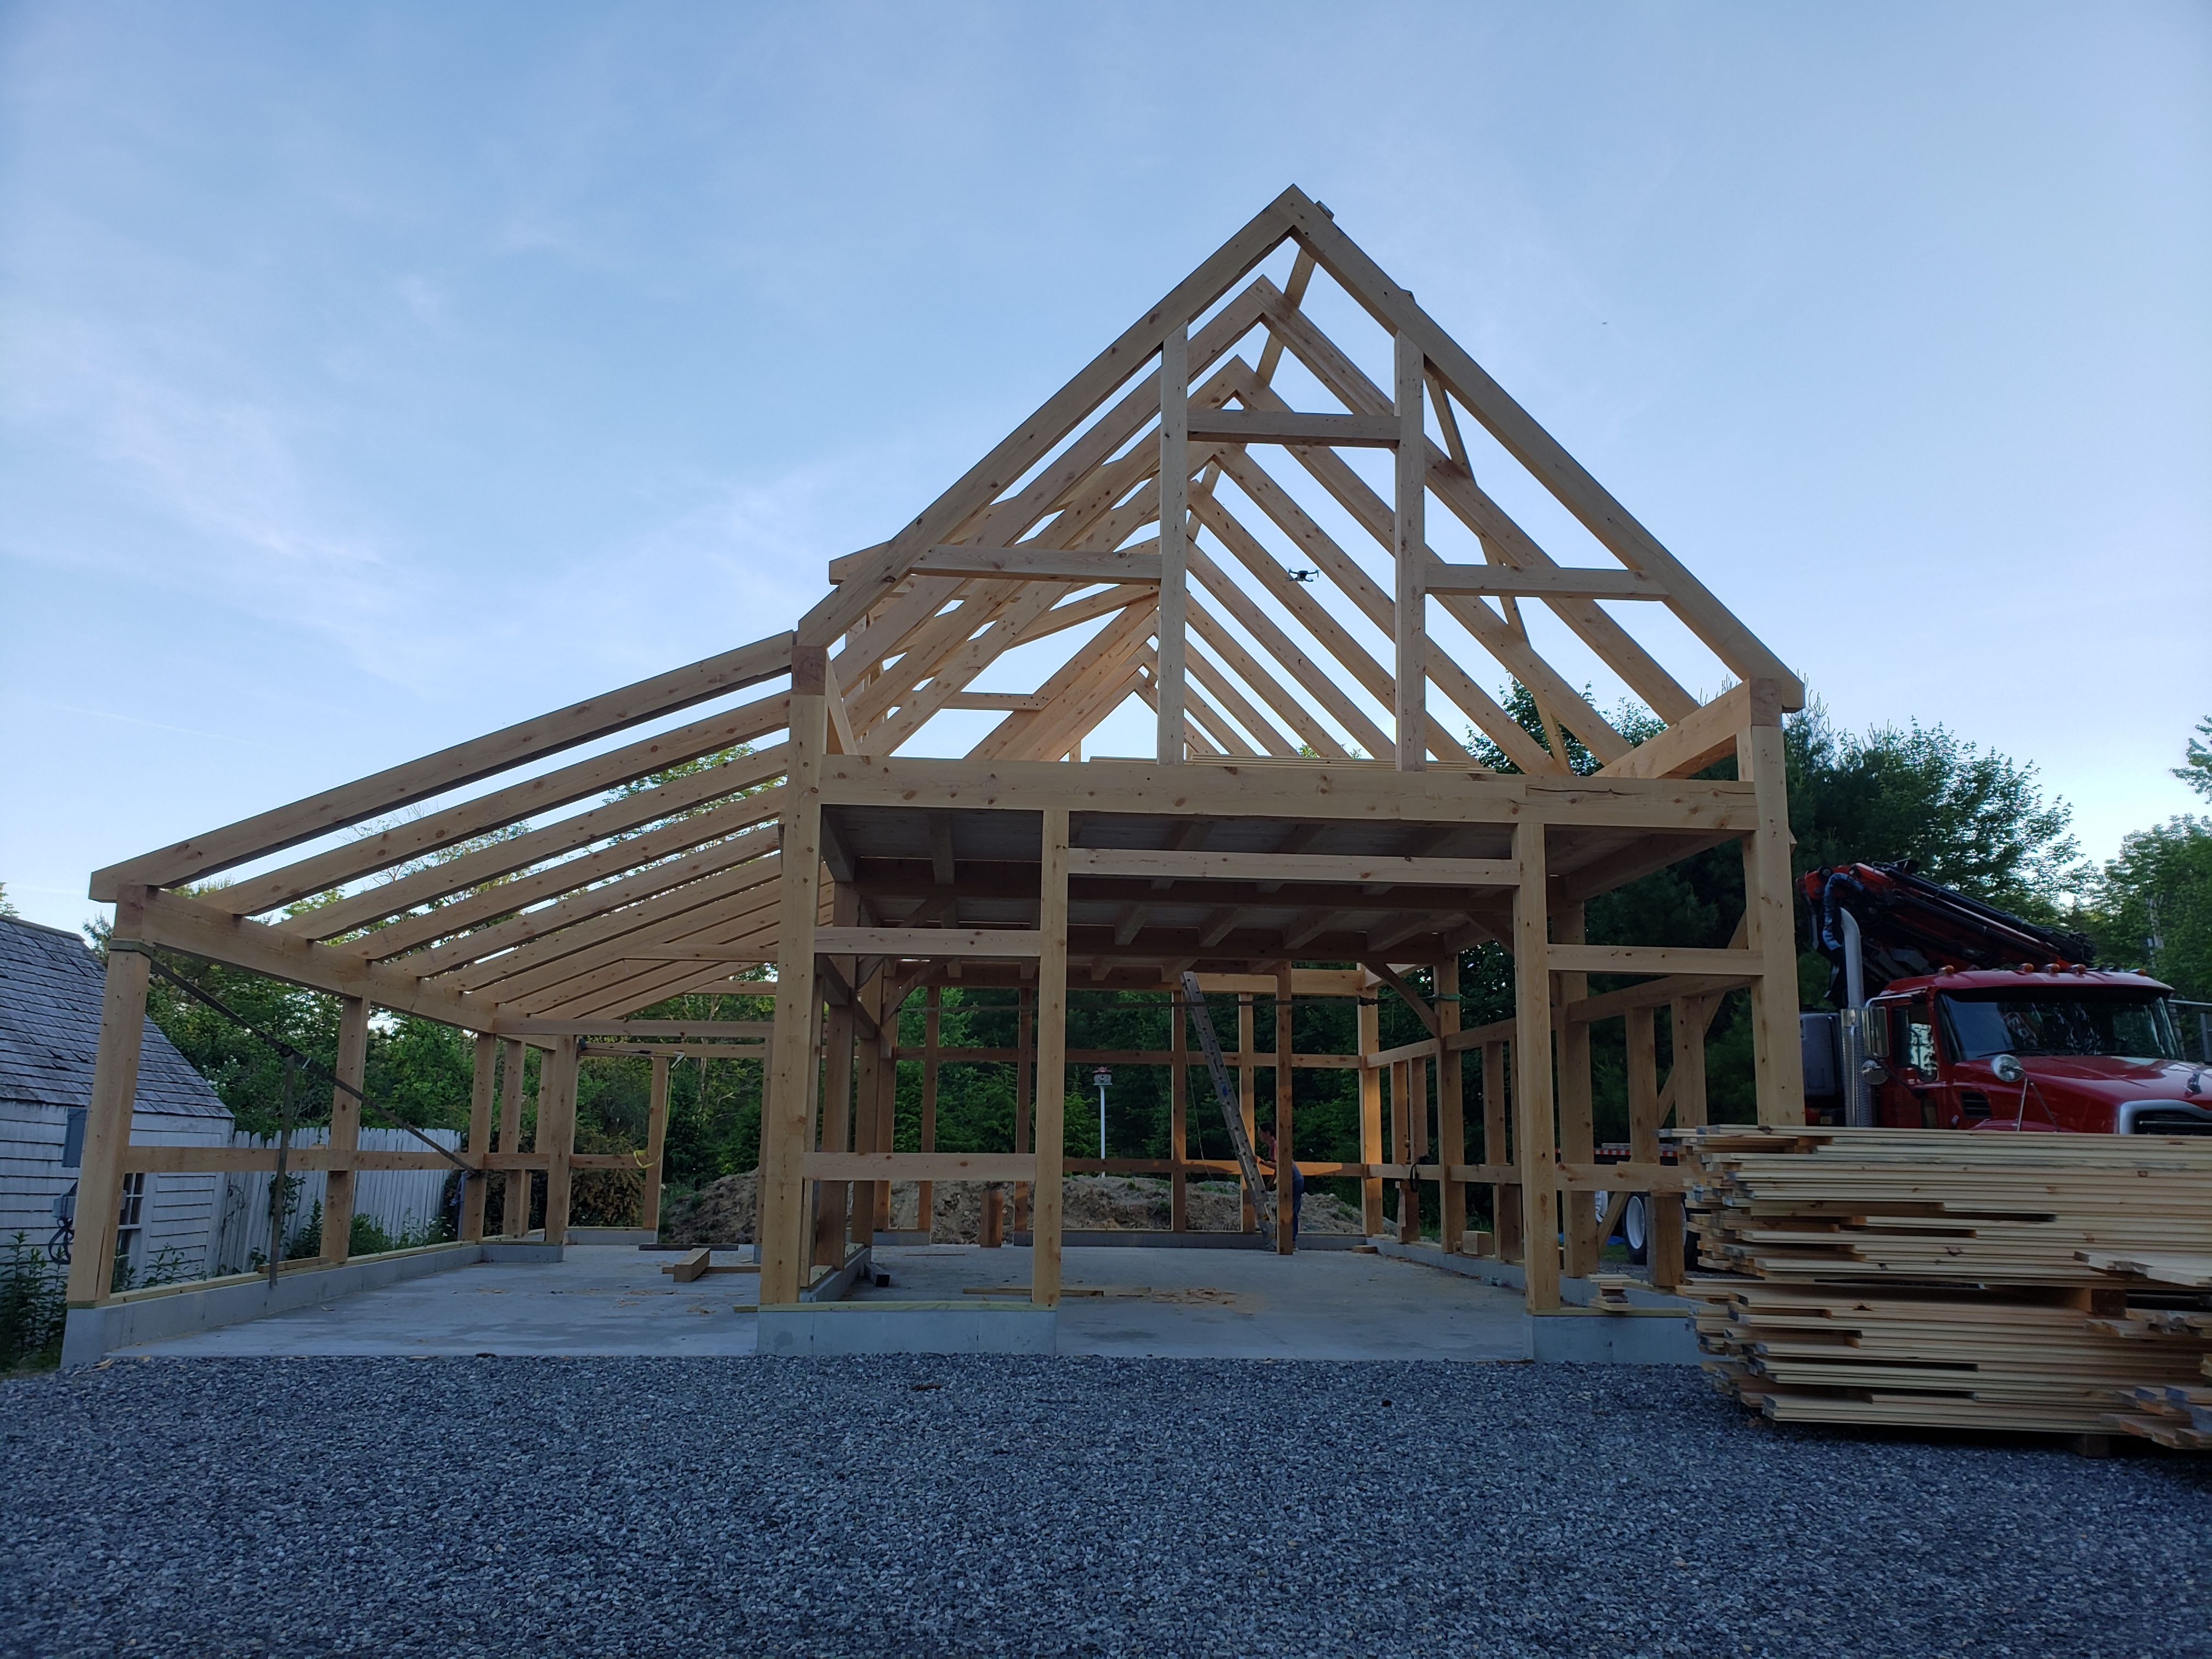 32 X 36 Timber Frame Barn In 2020 Timber Frame Barn Timber Framing Timber